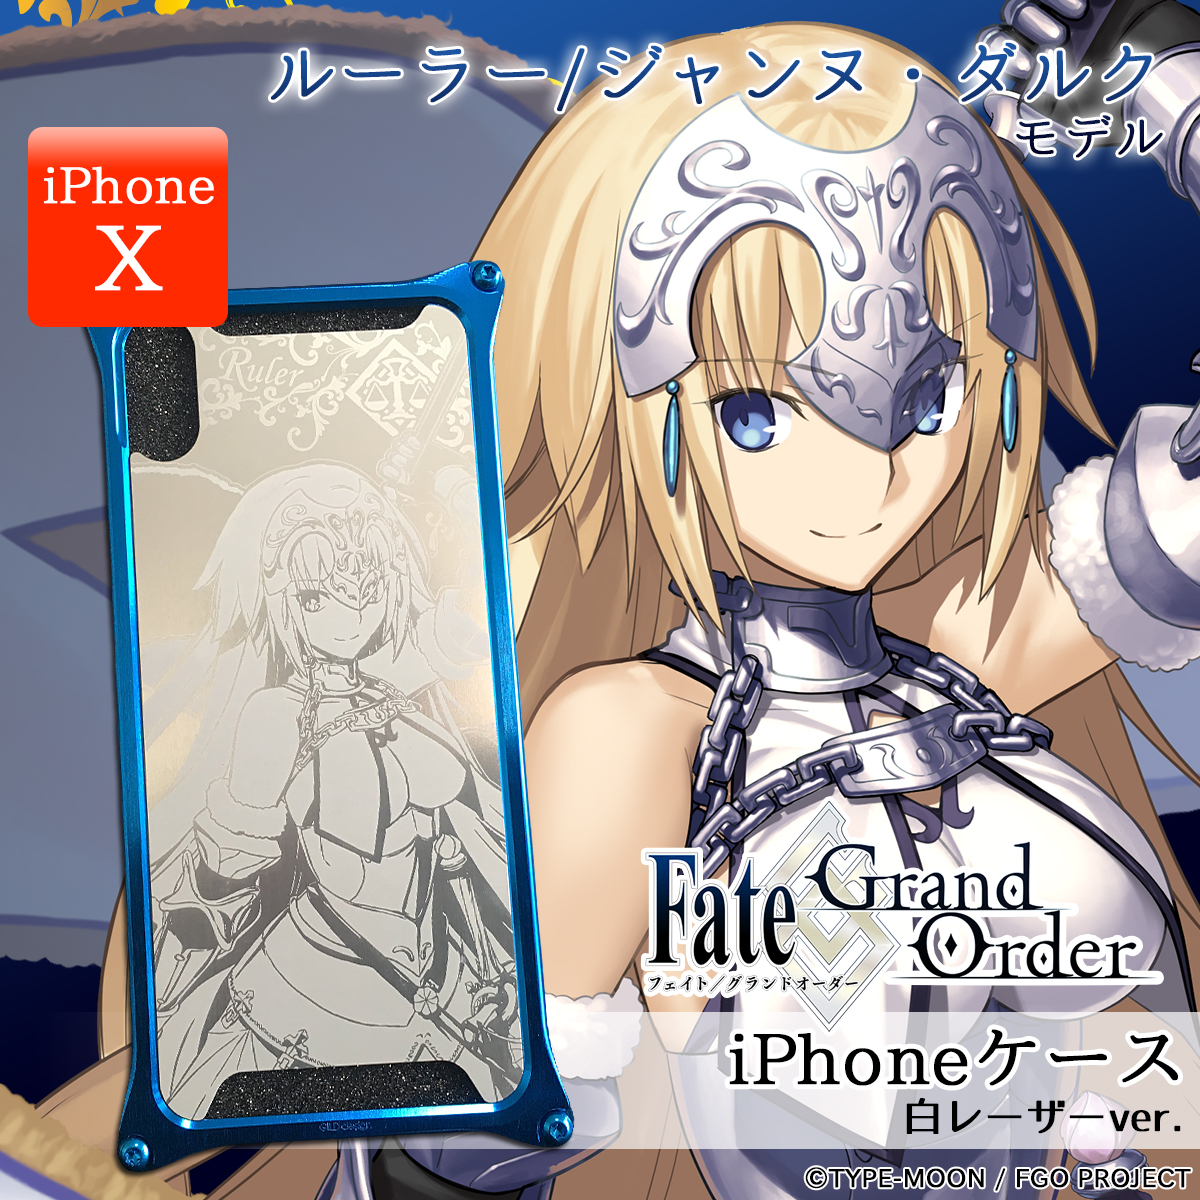 『Fate/Grand Order』×『GILD design』iPhoneX/Xsケース ルーラー/ジャンヌ・ダルク 白レーザーver.